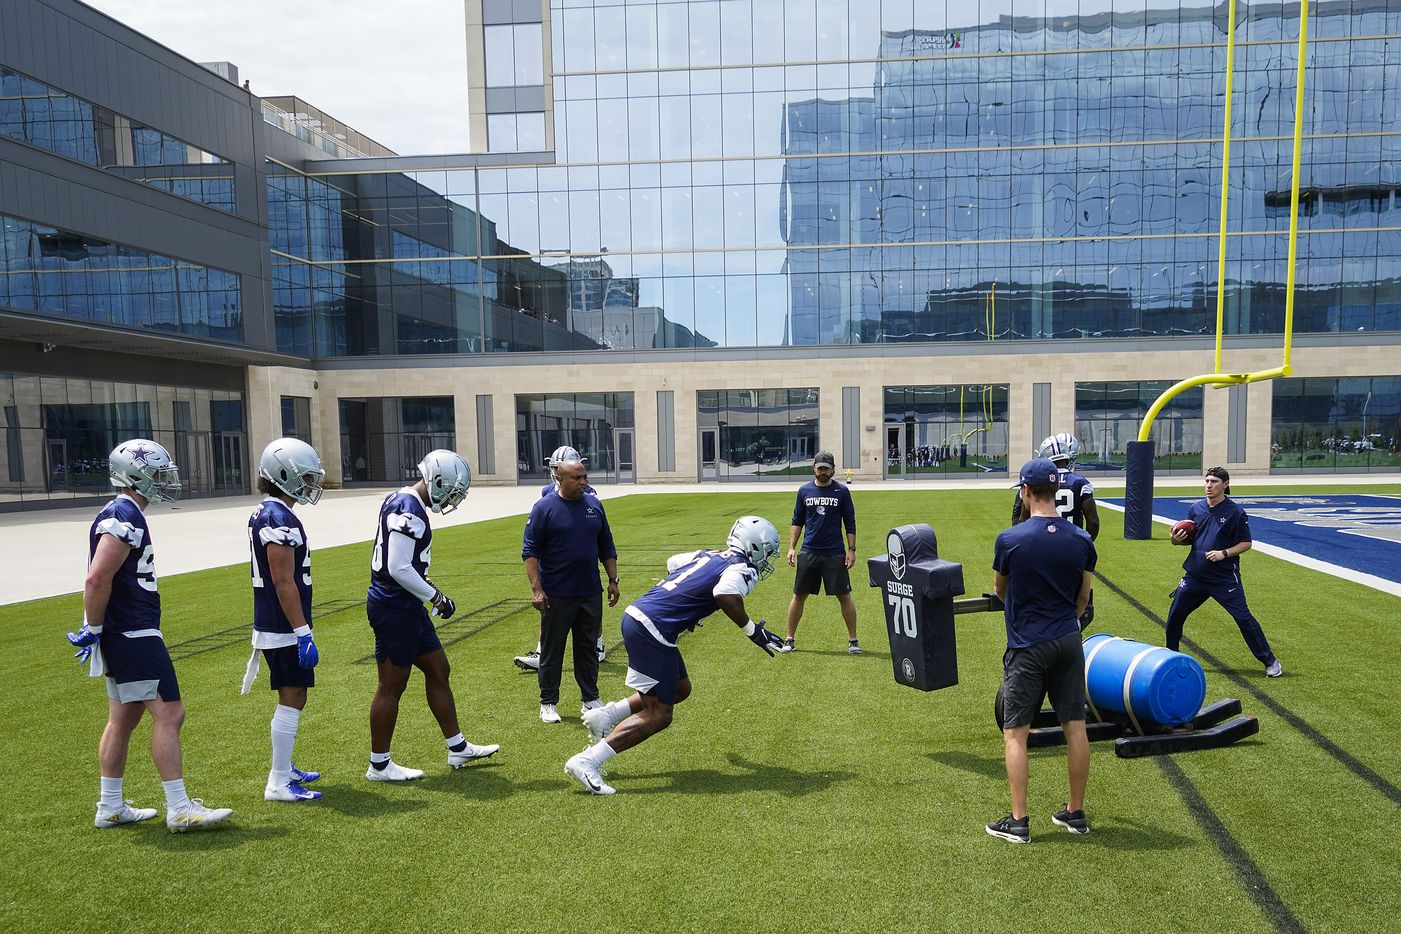 Dallas Cowboys linebacker Micah Parsons (11) runs a drill during a minicamp practice at The Star on Tuesday, June 8, 2021, in Frisco. (Smiley N. Pool/The Dallas Morning News)